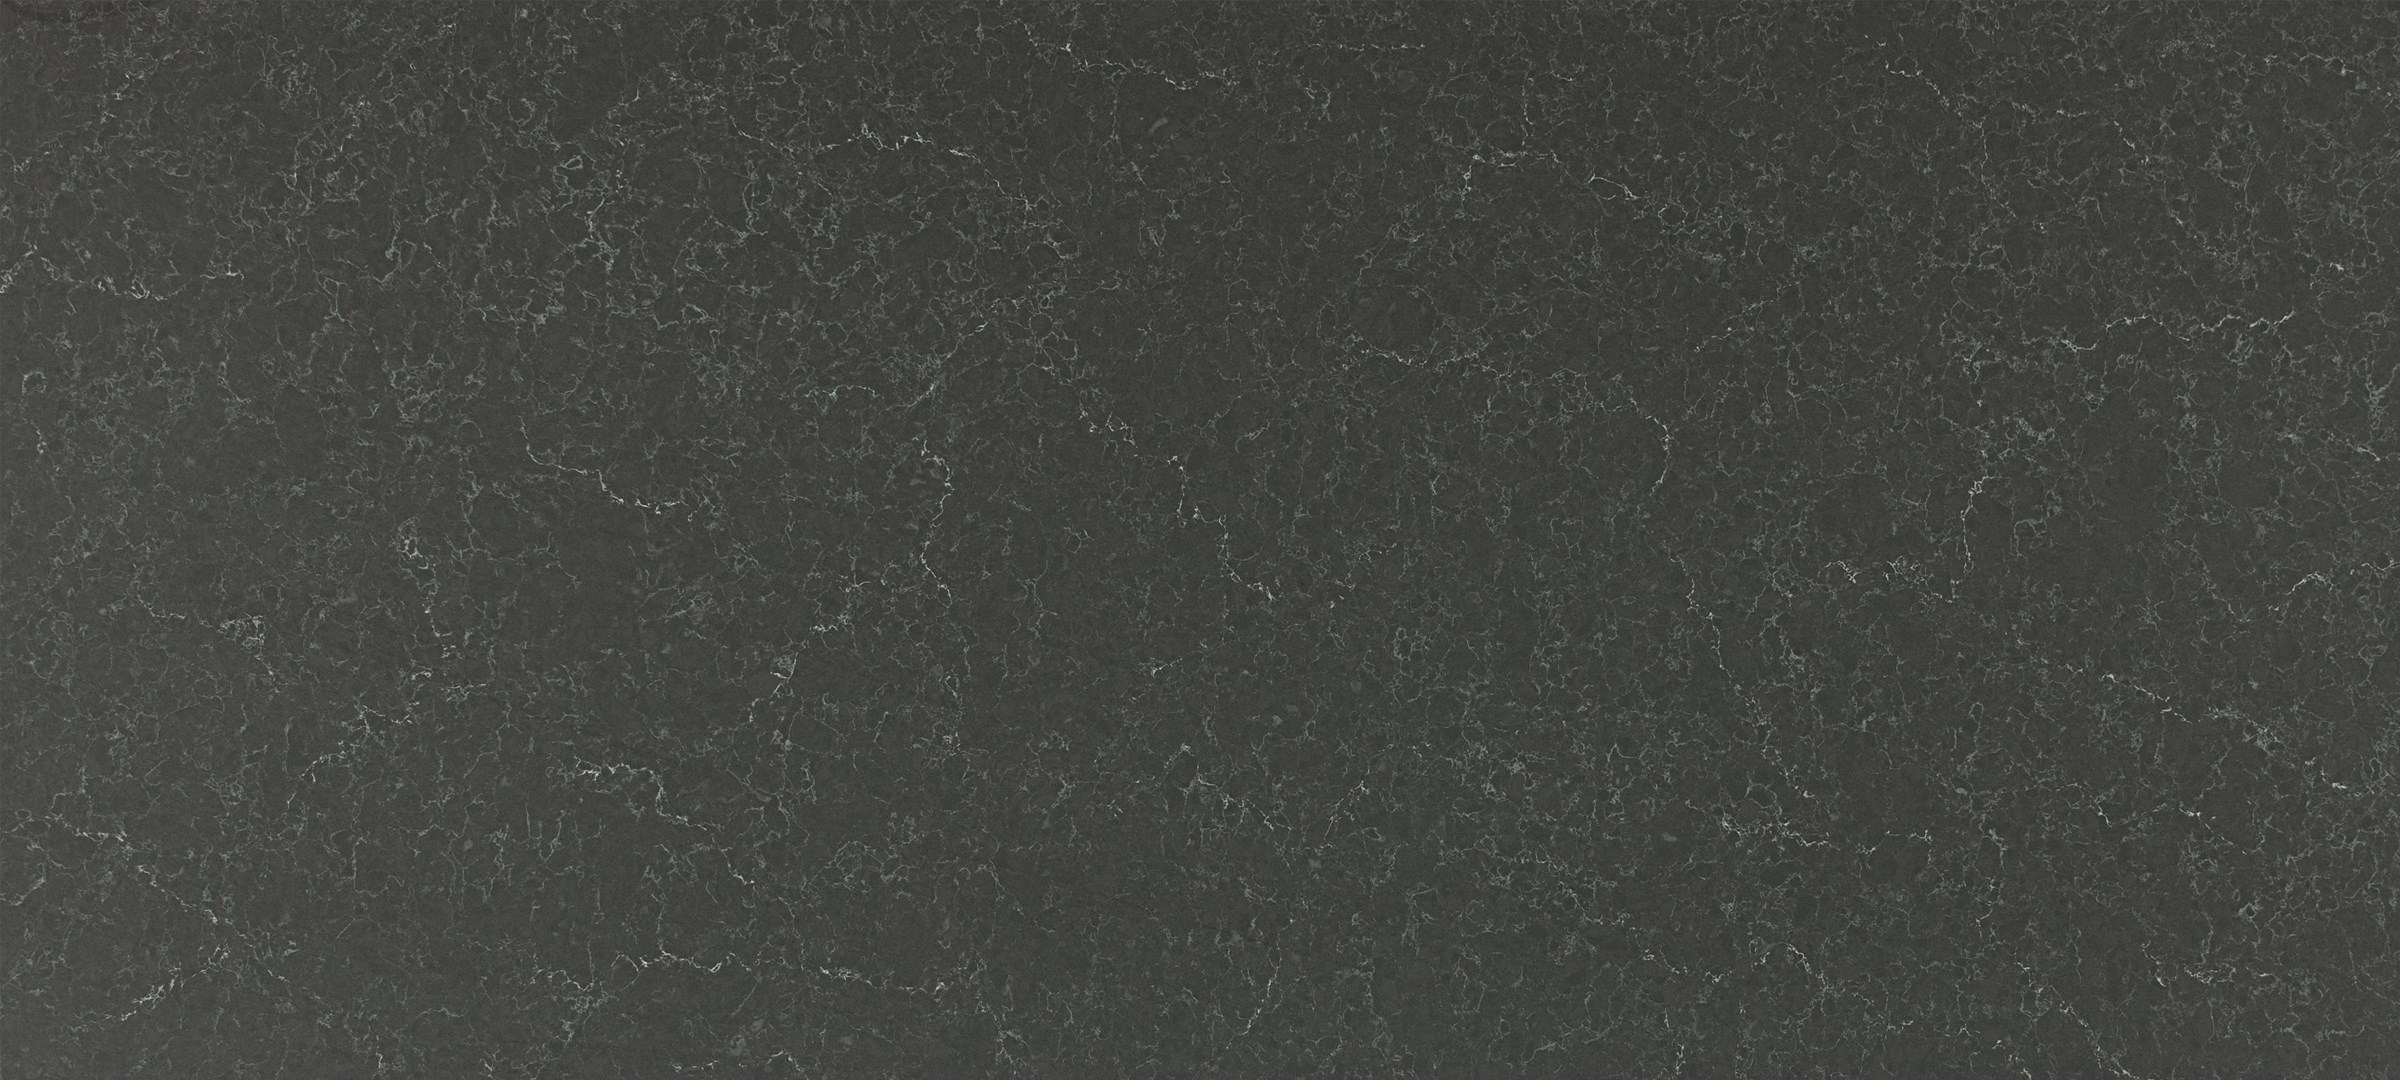 Caesarstone Countertop Thickness Piatra Gray 5003 Granite Countertops Seattle